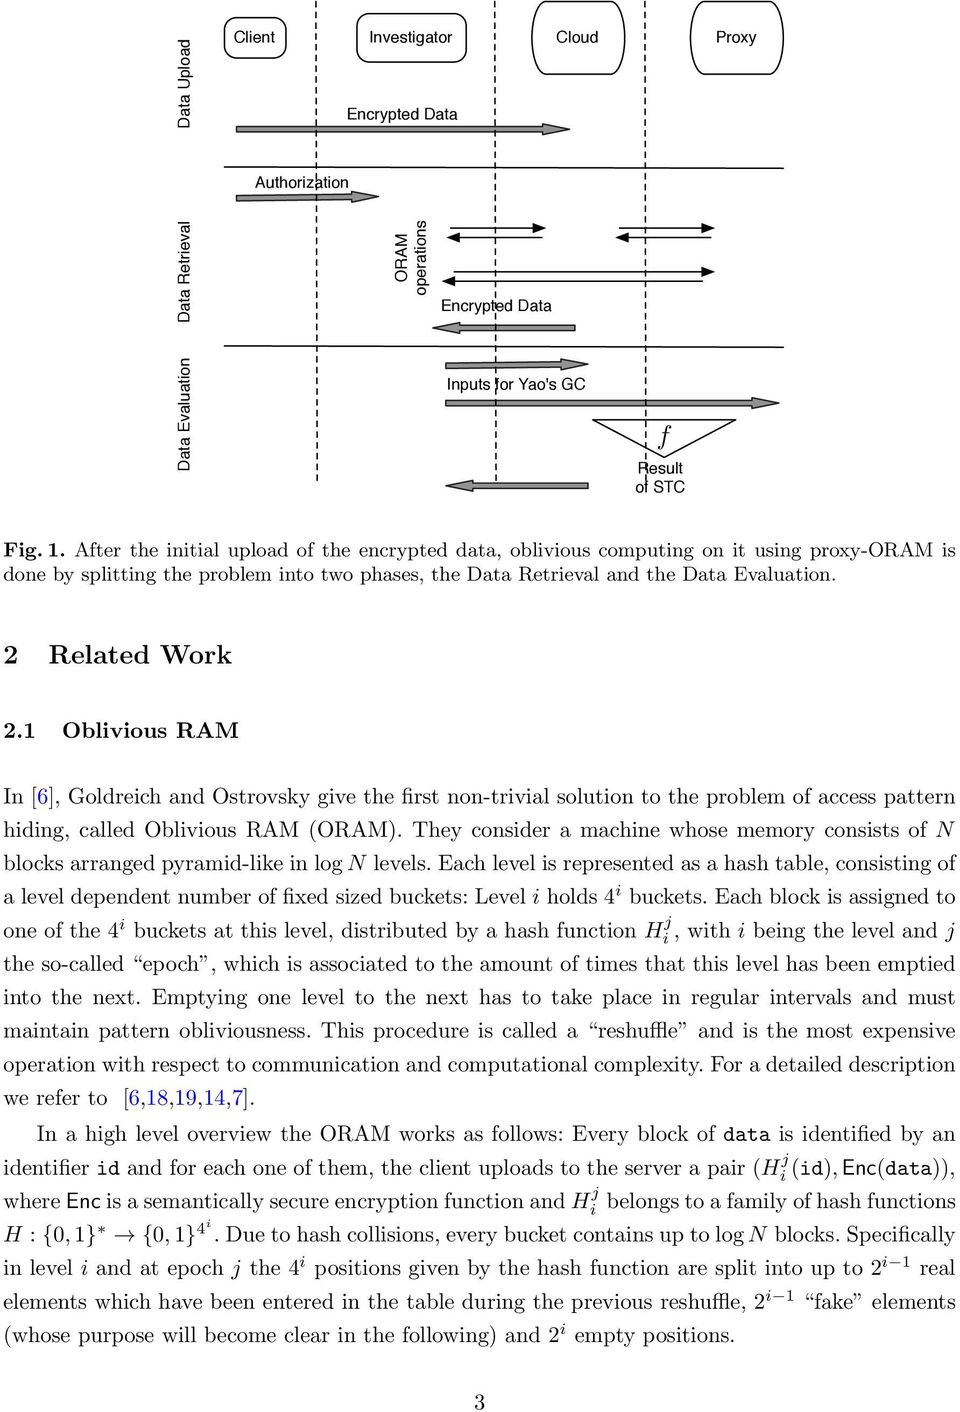 2 Related Work 2.1 Oblivious RAM In [6], Goldreich and Ostrovsky give the first non-trivial solution to the problem of access pattern hiding, called Oblivious RAM (ORAM).